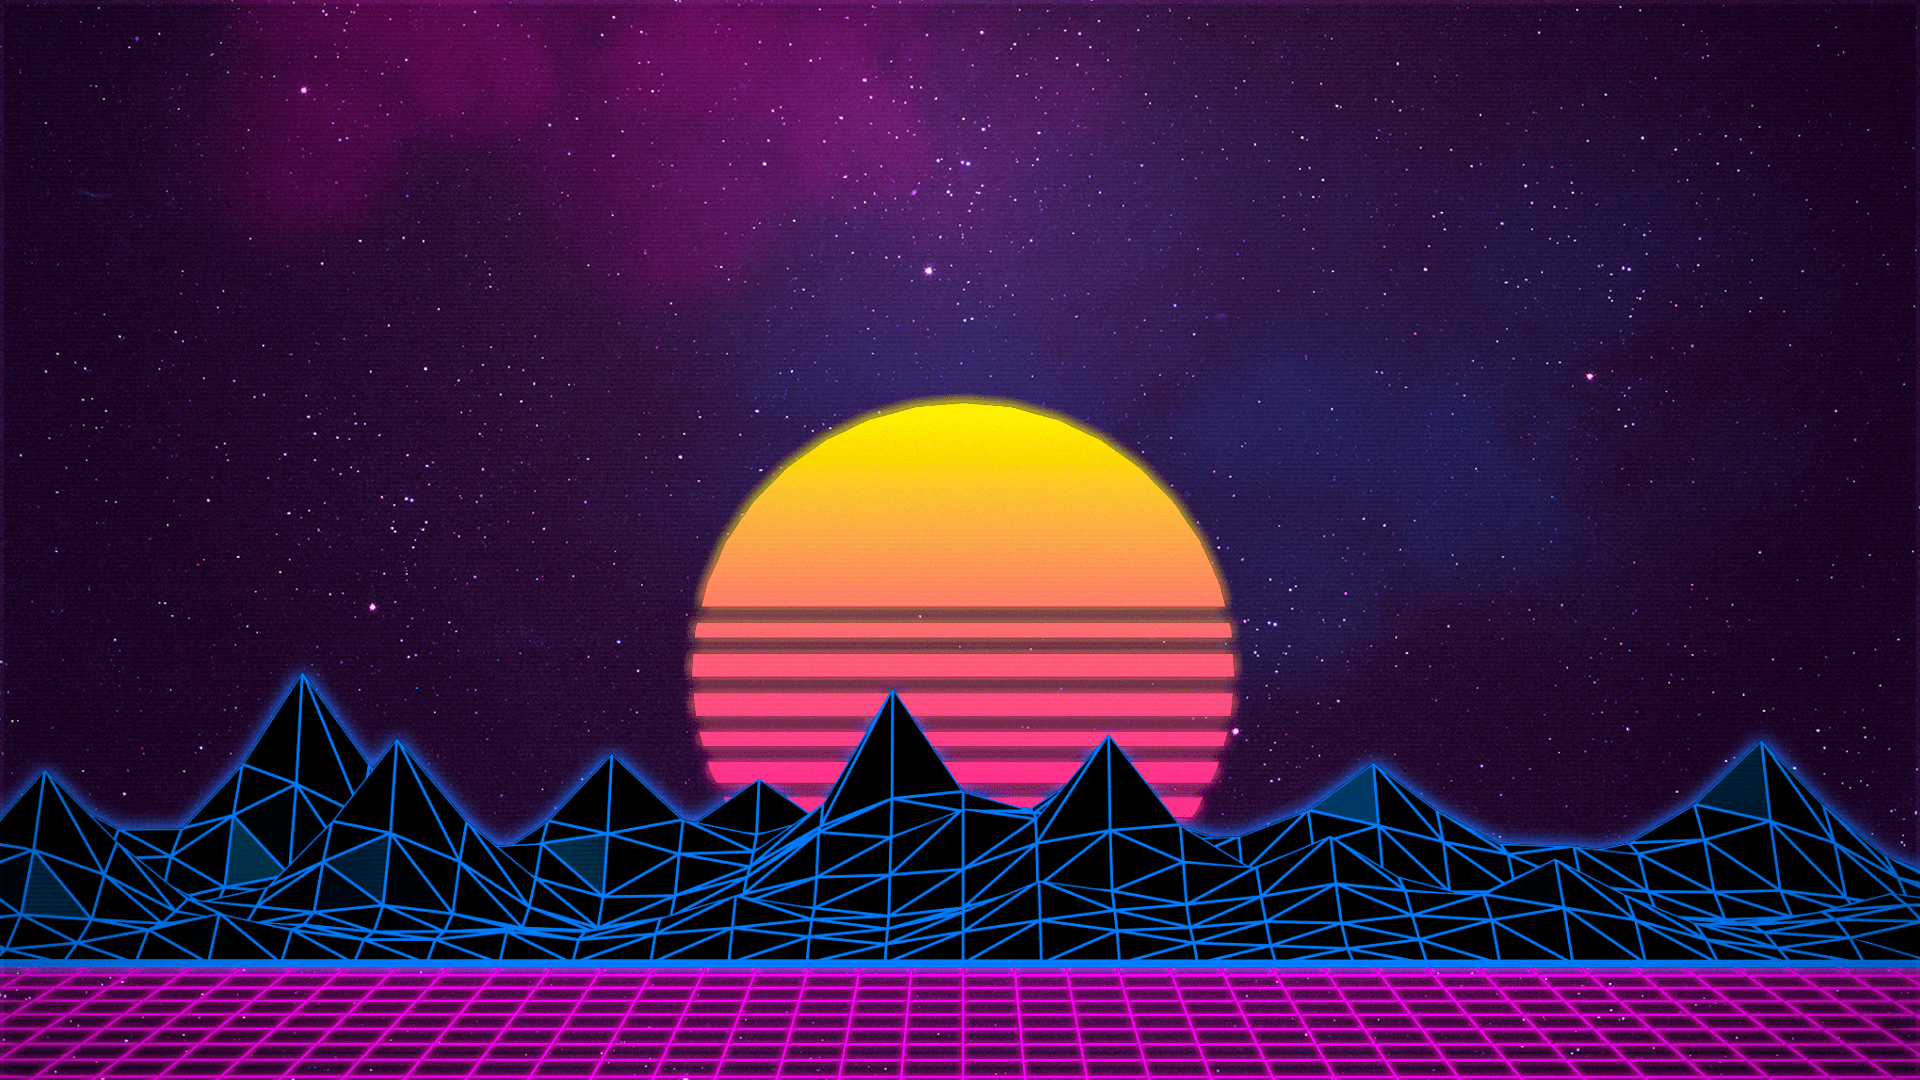 Retro Game Wallpapers   Top Retro Game Backgrounds 1920x1080